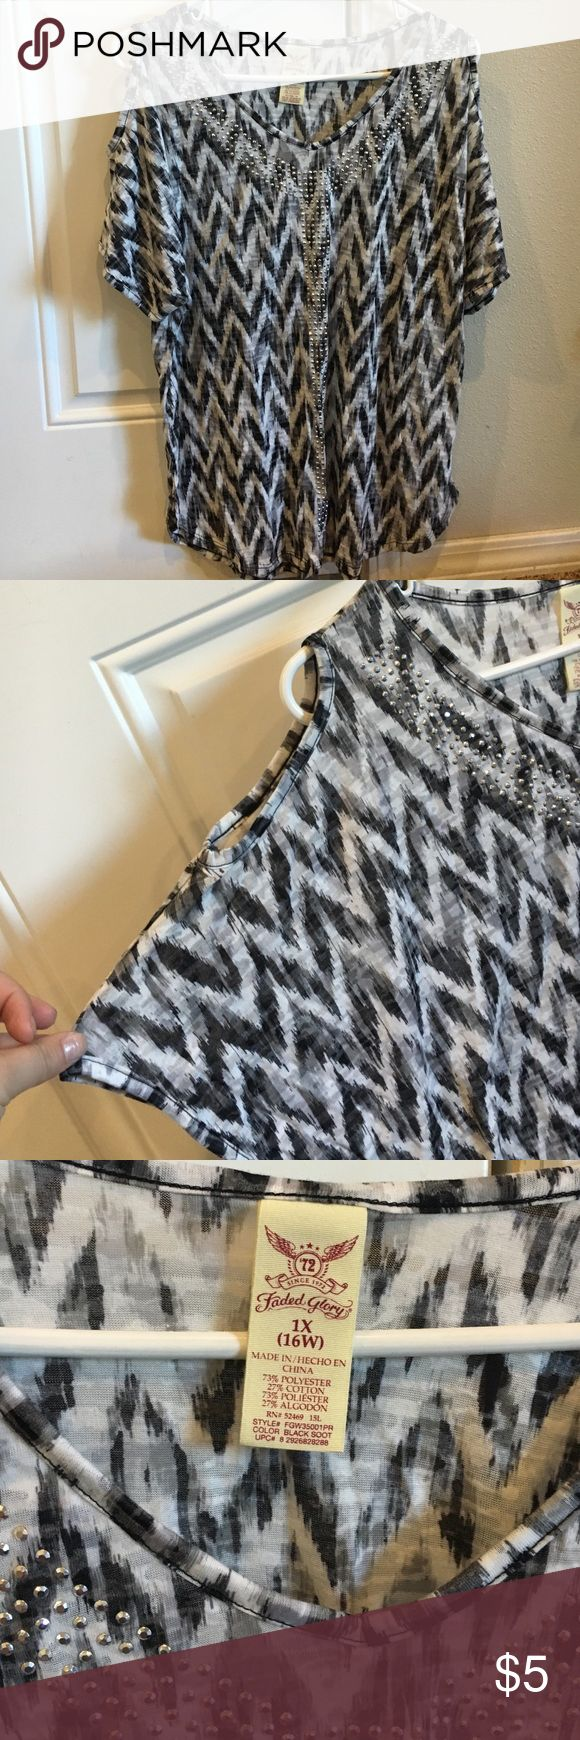 Chevron blouse Black and white chevron blouse. With rhinestones. Short sleeve with shoulder cut outs. Faded Glory Tops Blouses